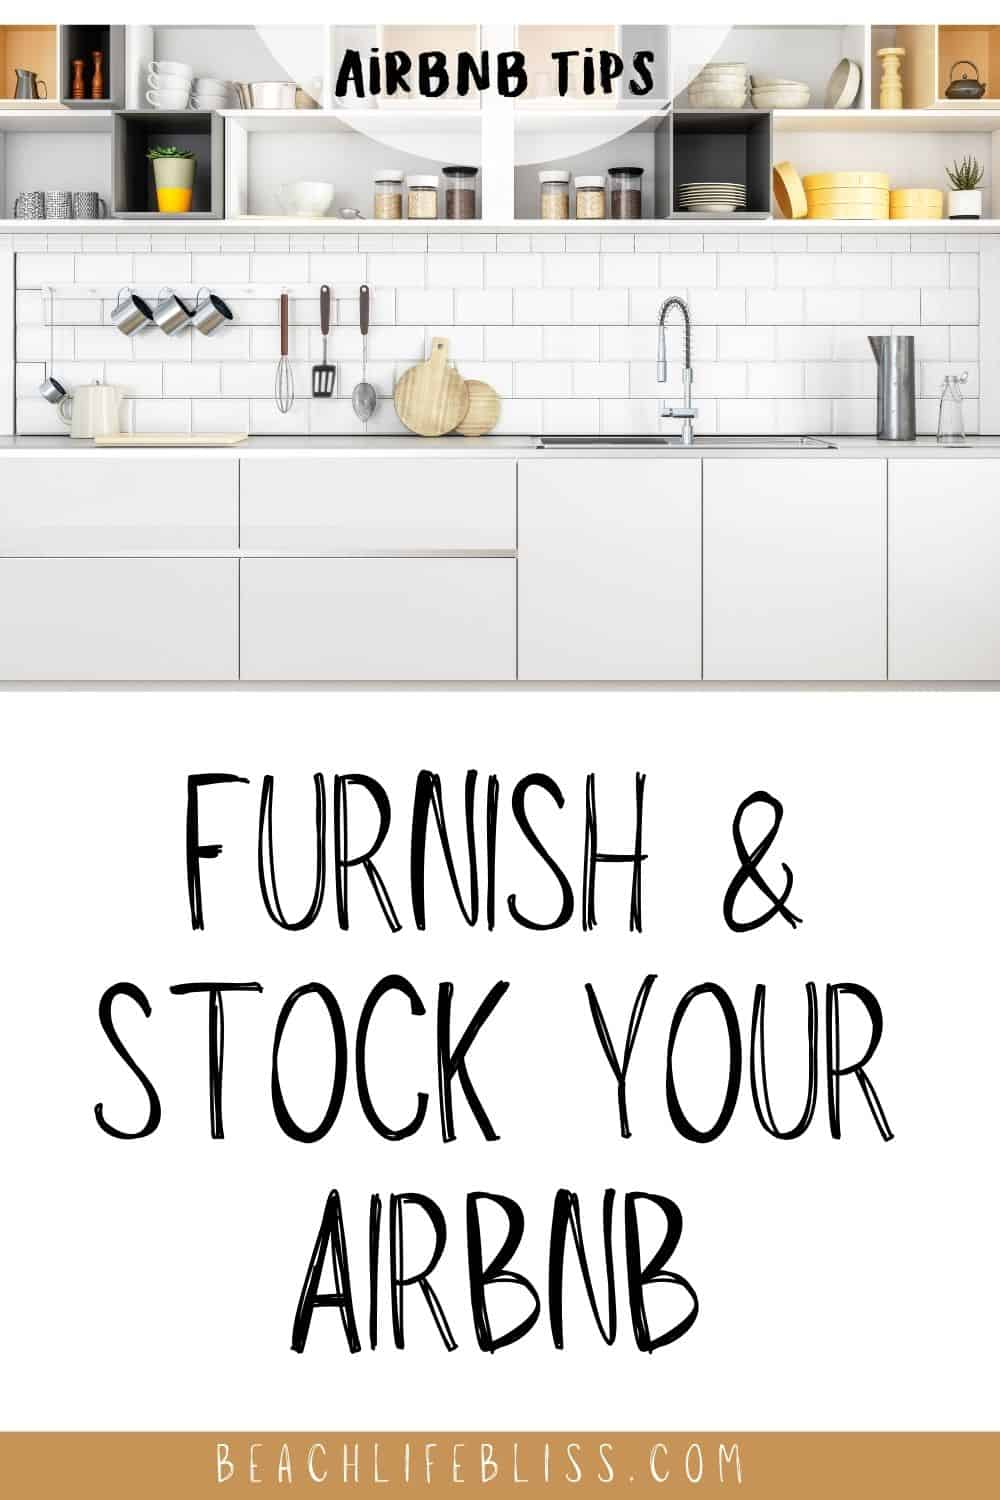 AirBnb Hosting Tips Furnish and Stock Your AirBnb